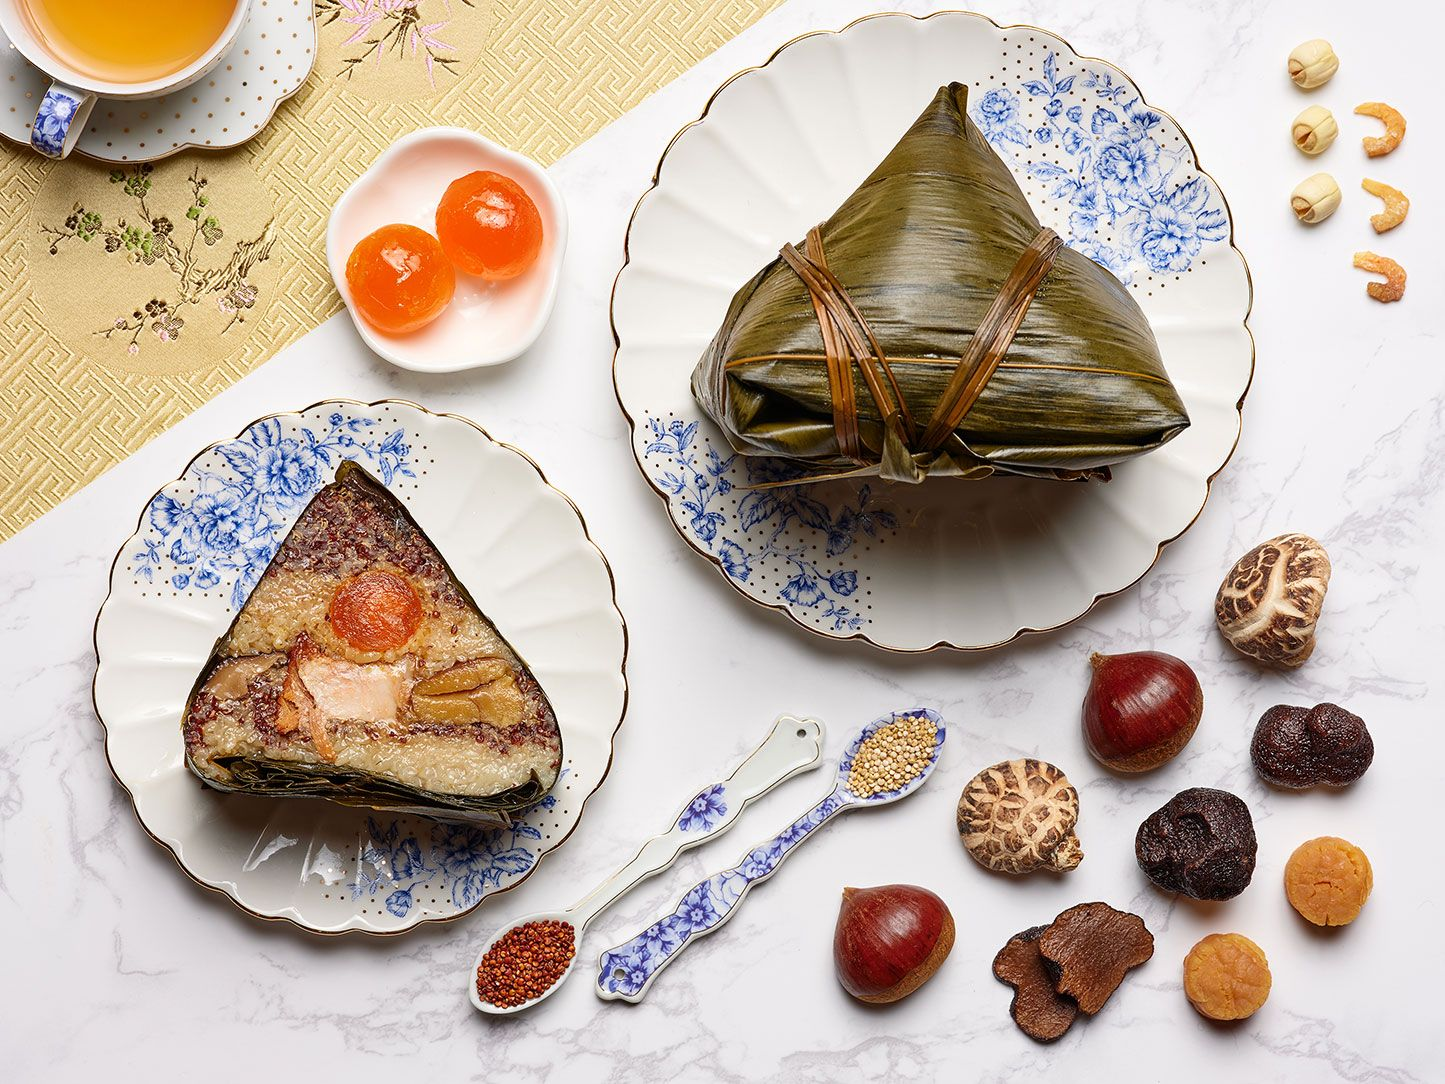 10 Rice Dumplings To Have This Dragon Boat Festival